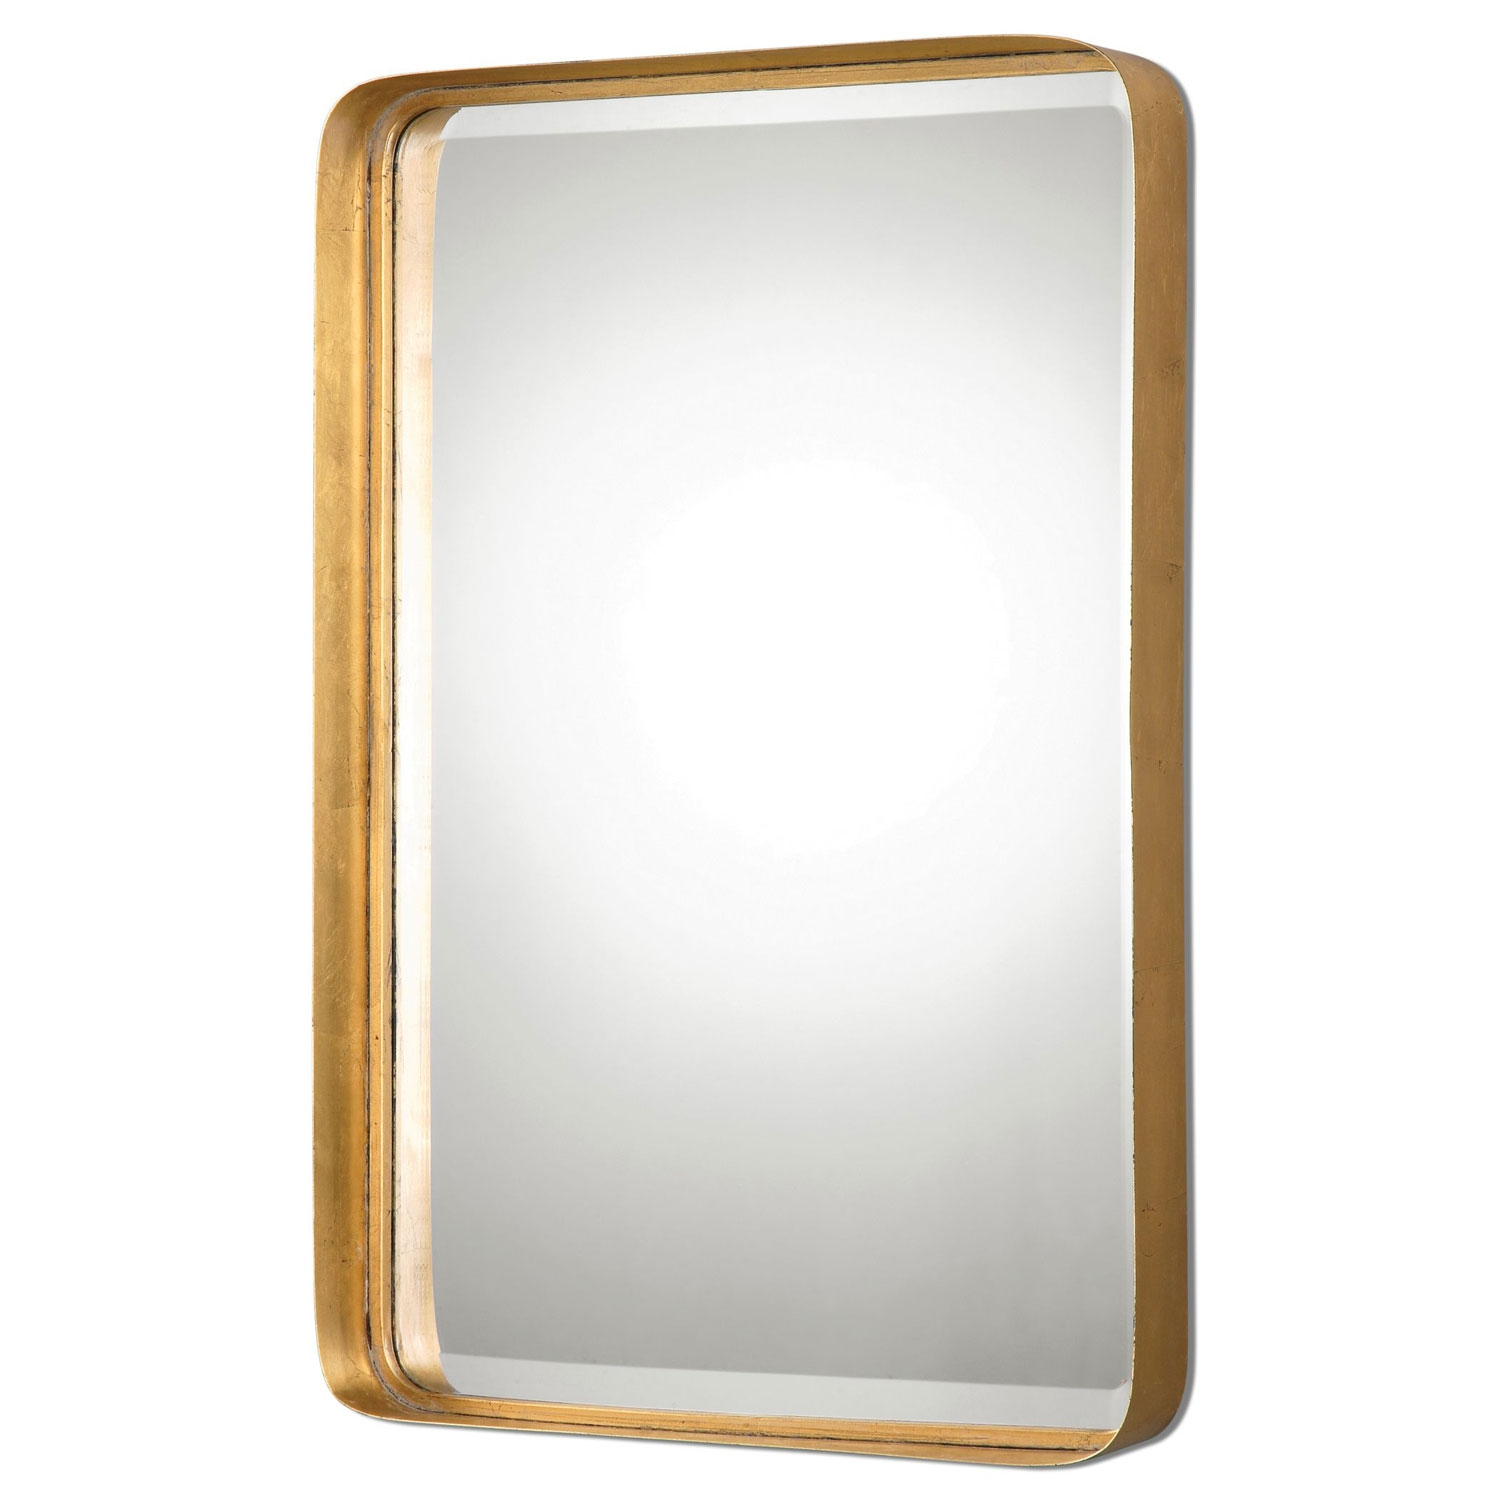 Wall Mirrors Bathroom Mirrors Bellacor With Regard To Brass Mirrors For Sale (Image 14 of 15)